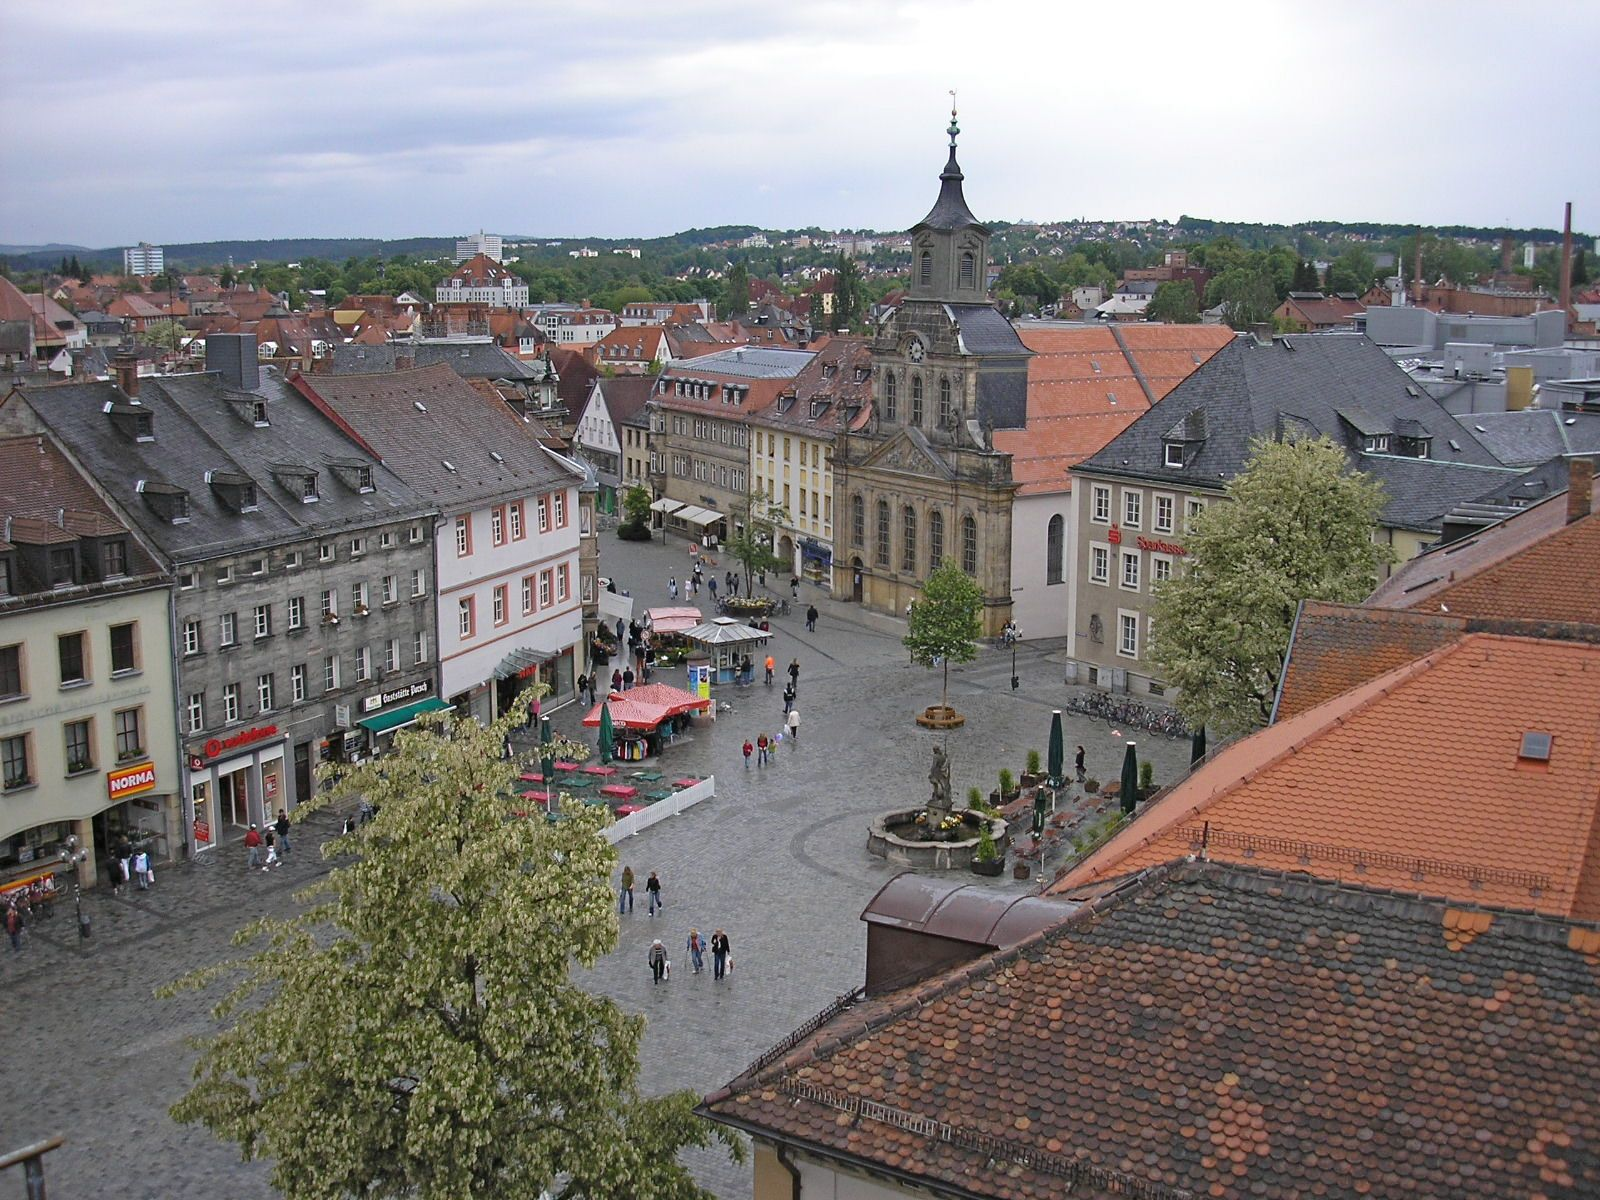 Bayreuth town square